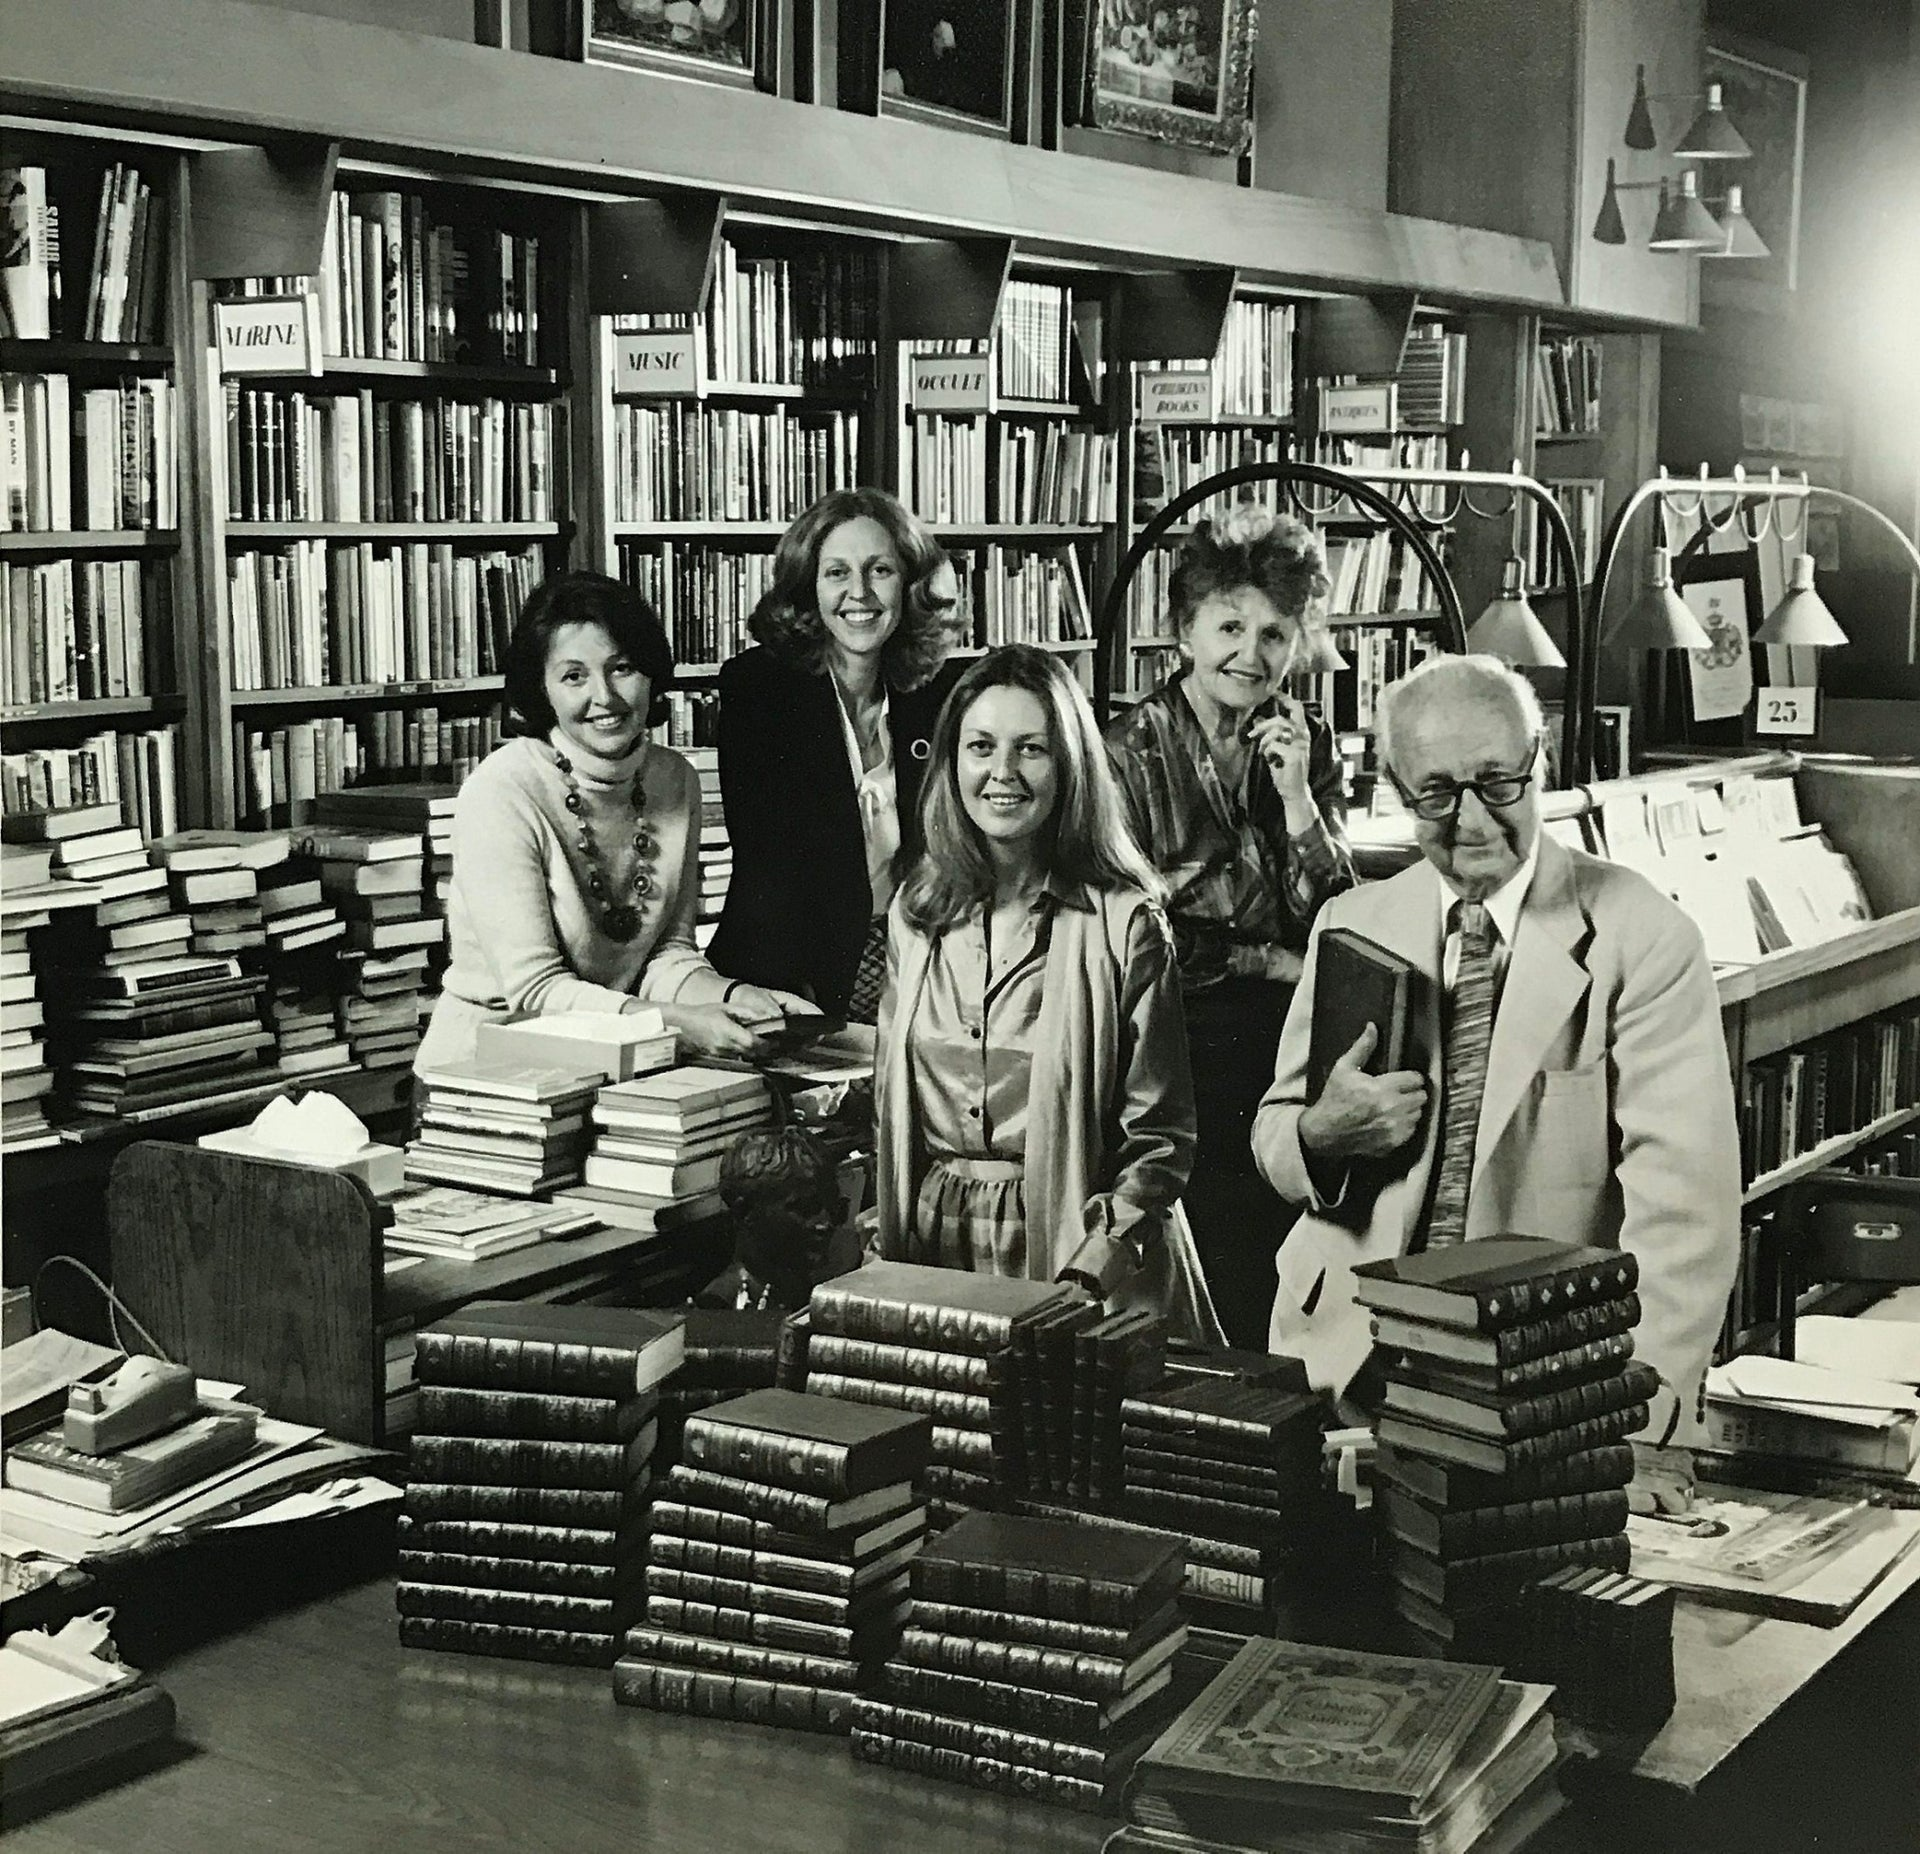 The bookstore was founded in 1925 by Louis Cohen, who ran the family business with his three daughters, Judith, Naomi, and Adina, and his wife Ruth.